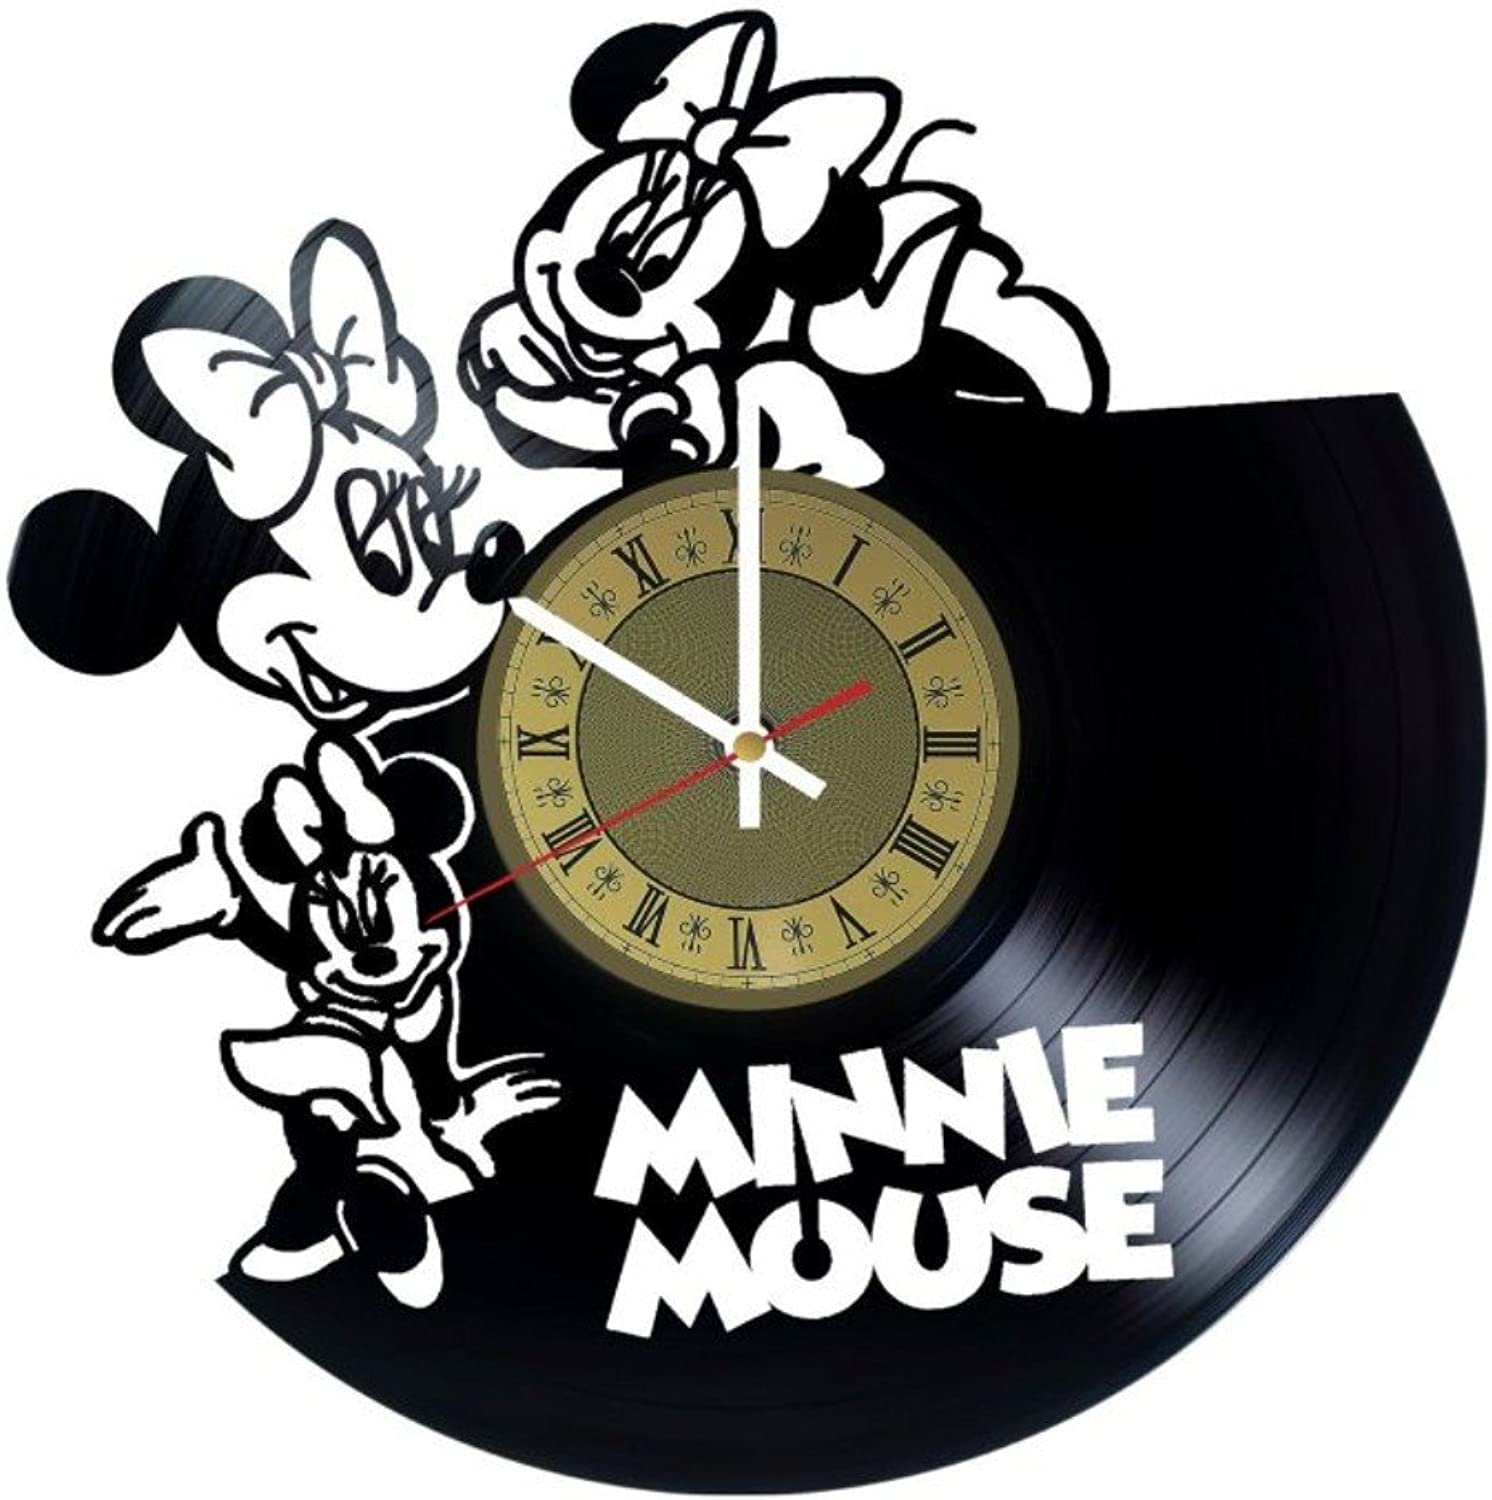 Minnie Mouse Vinyl Wall Clock Disney Great Gift Men, Women, Kids, Girls Boys, Birthday, Christmas Beautiful Home Decor - Unique Design That Made Out Vinyl LP Record